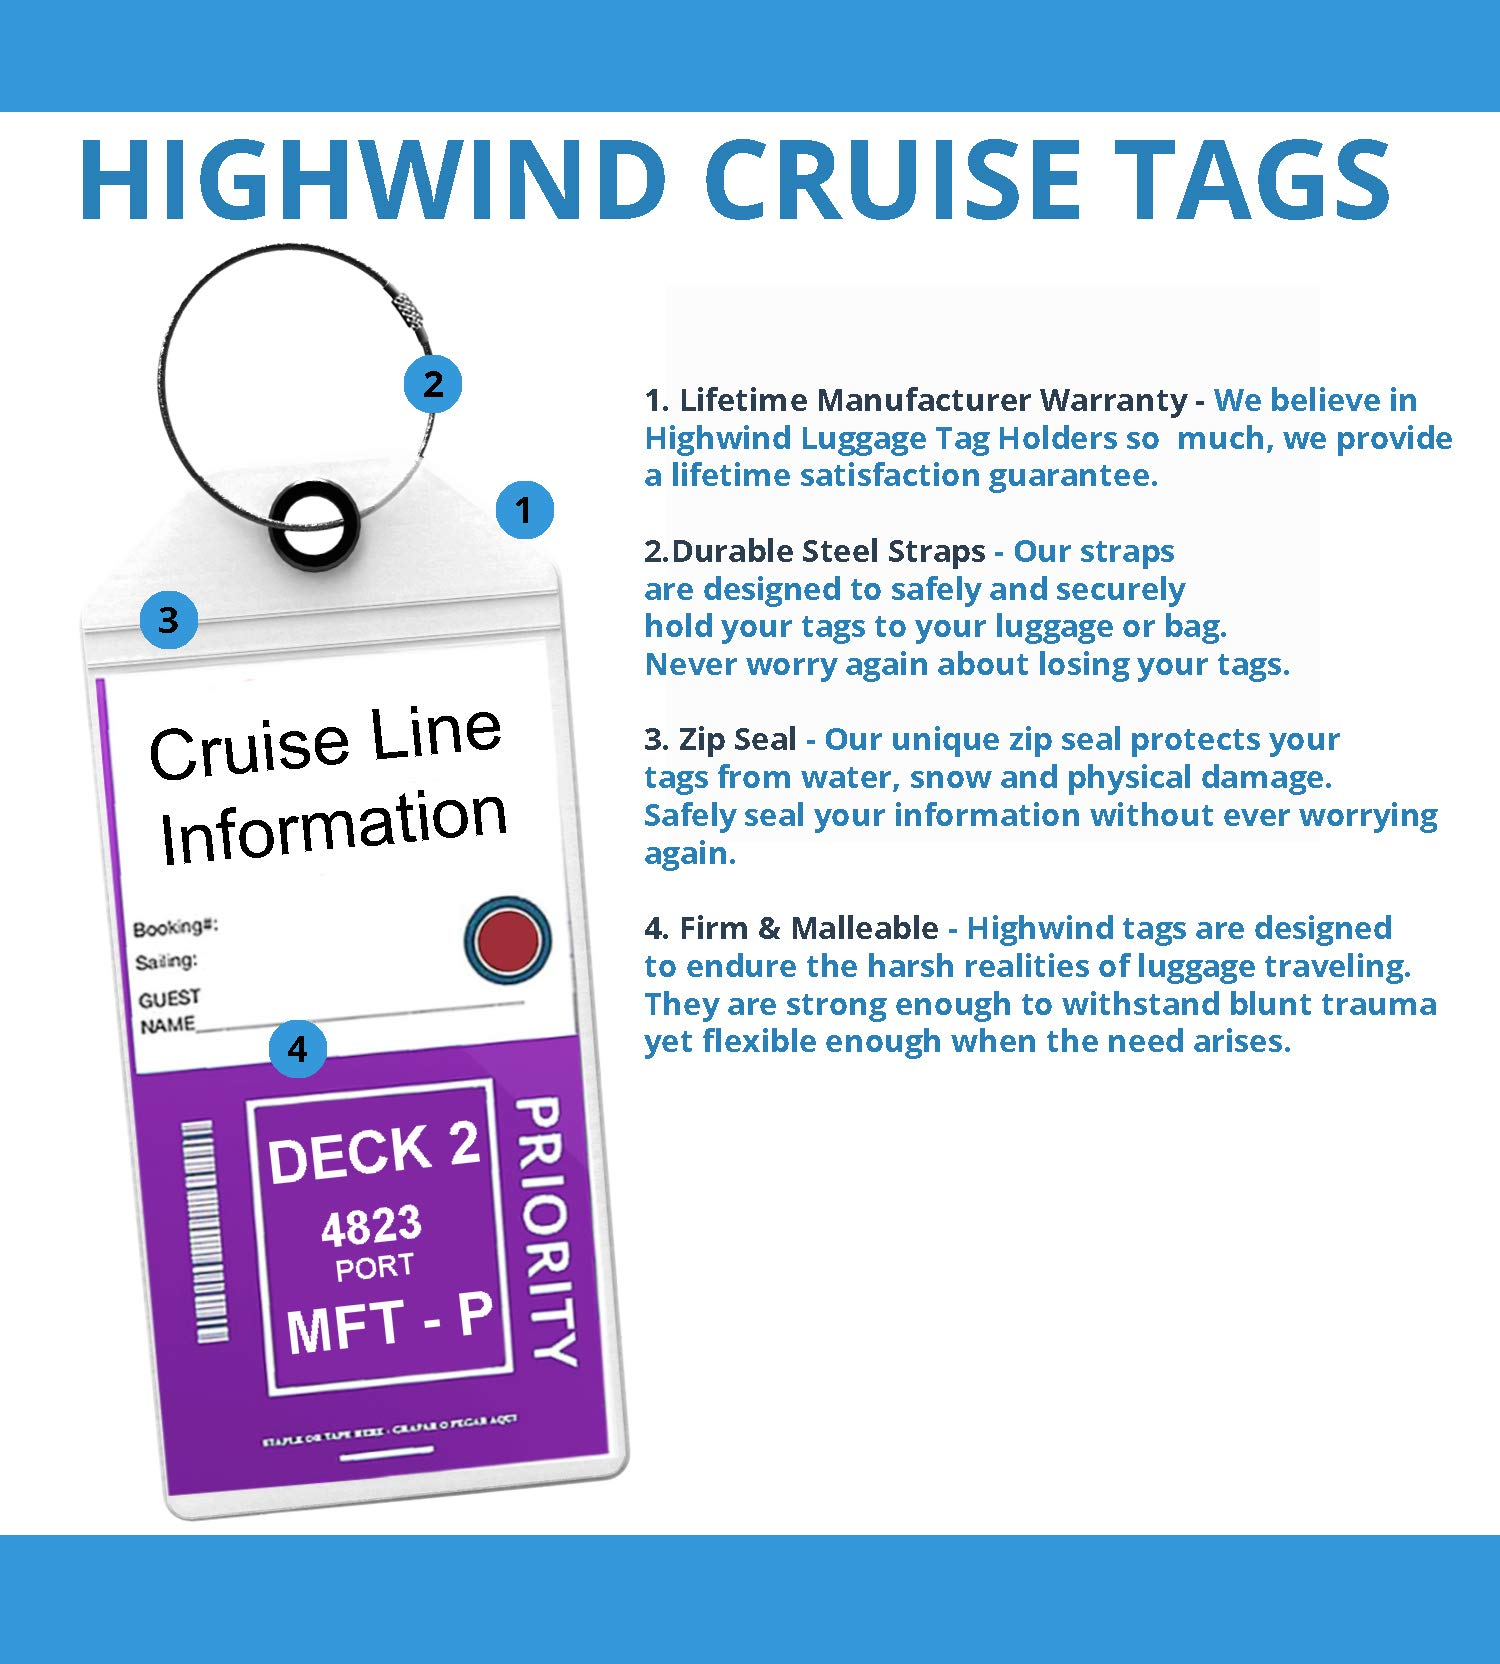 Cruise Tags Luggage Etag Holders Zip Seal & Steel Loops Thick PVC 4 Pack - Clear by Highwind (Image #3)